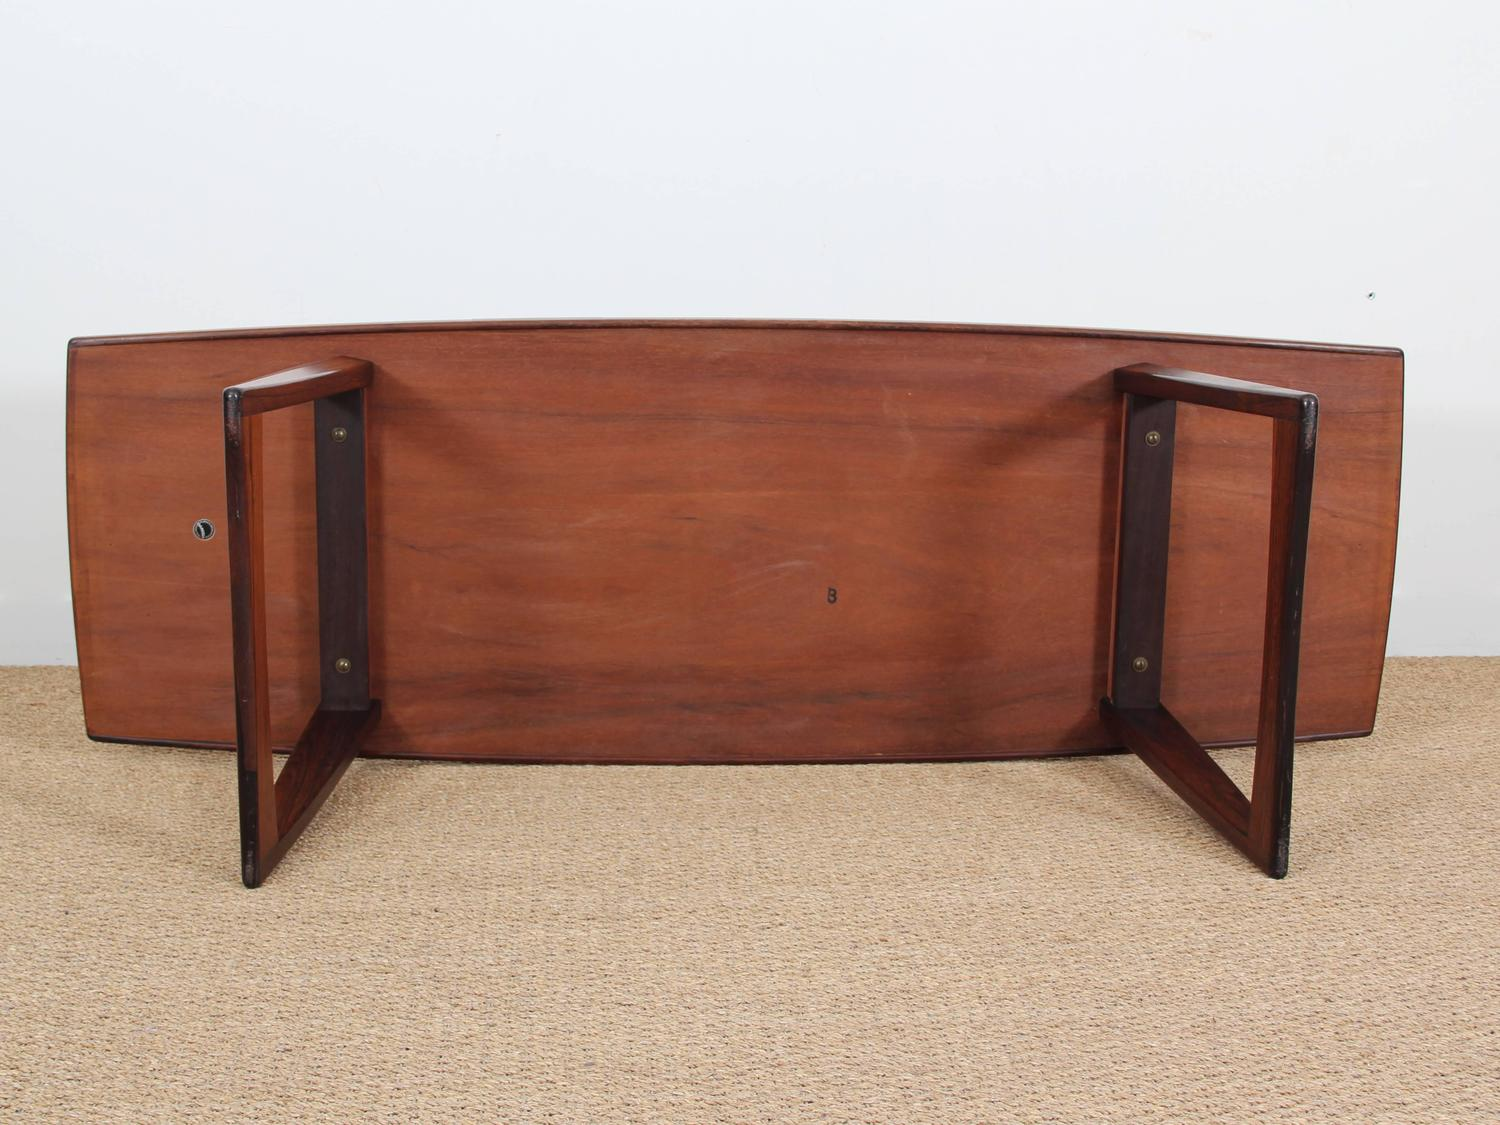 Mid Century Modern Large Coffee Table In Rio Rosewood With Sledge Legs For Sale At 1stdibs